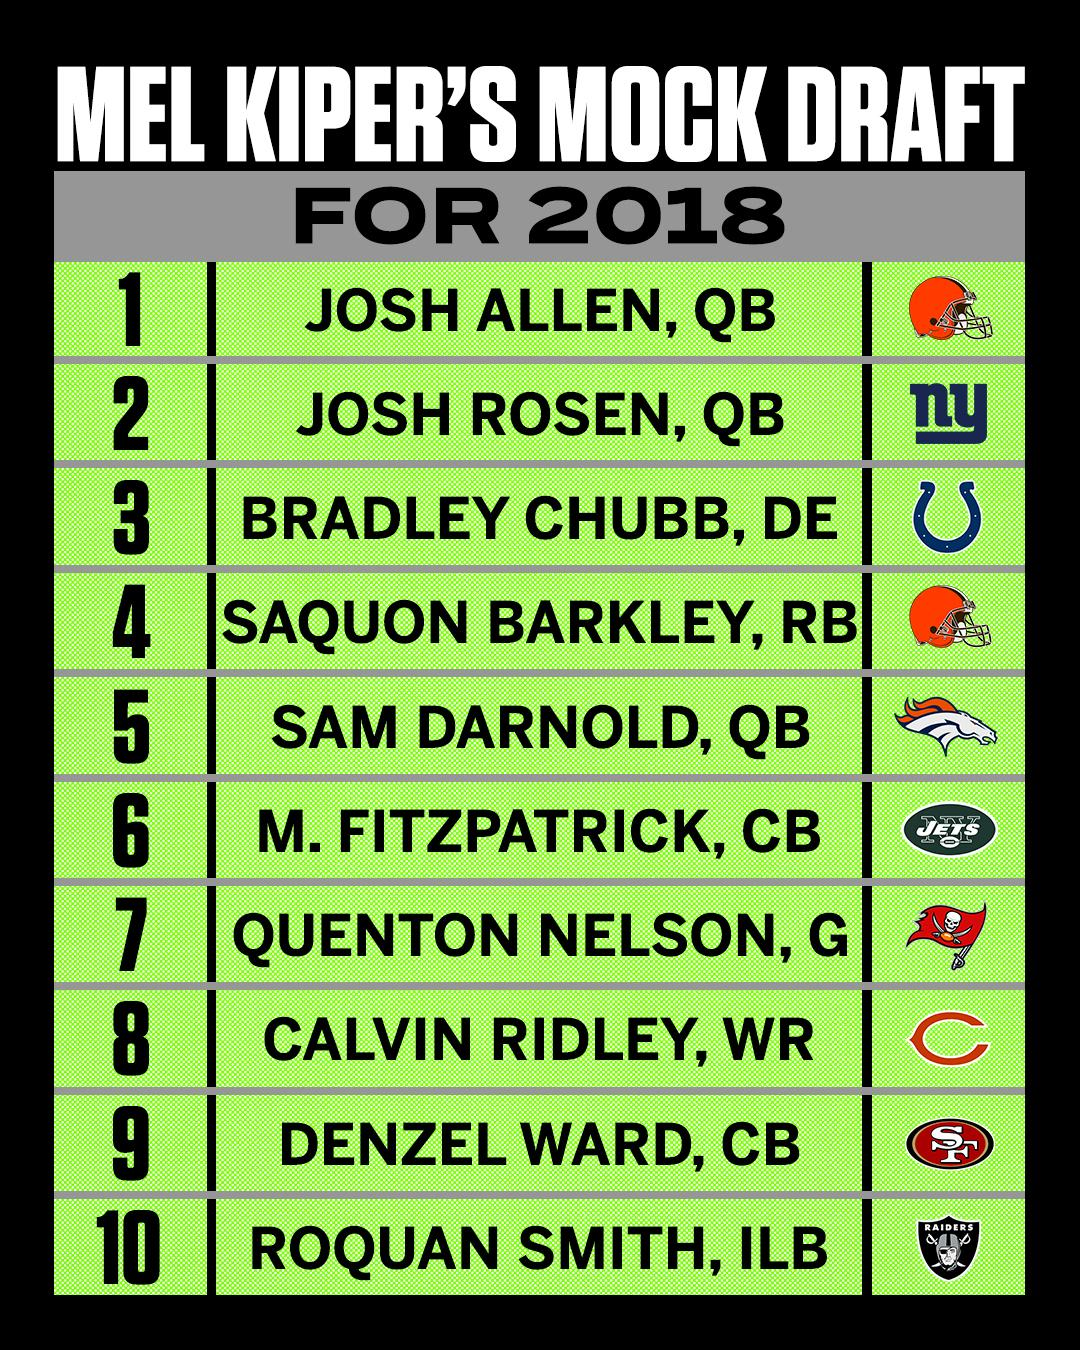 .@MelKiperESPN's first NFL mock draft is here: https://t.co/Y34zKKCnrS https://t.co/pNMc4nopfy